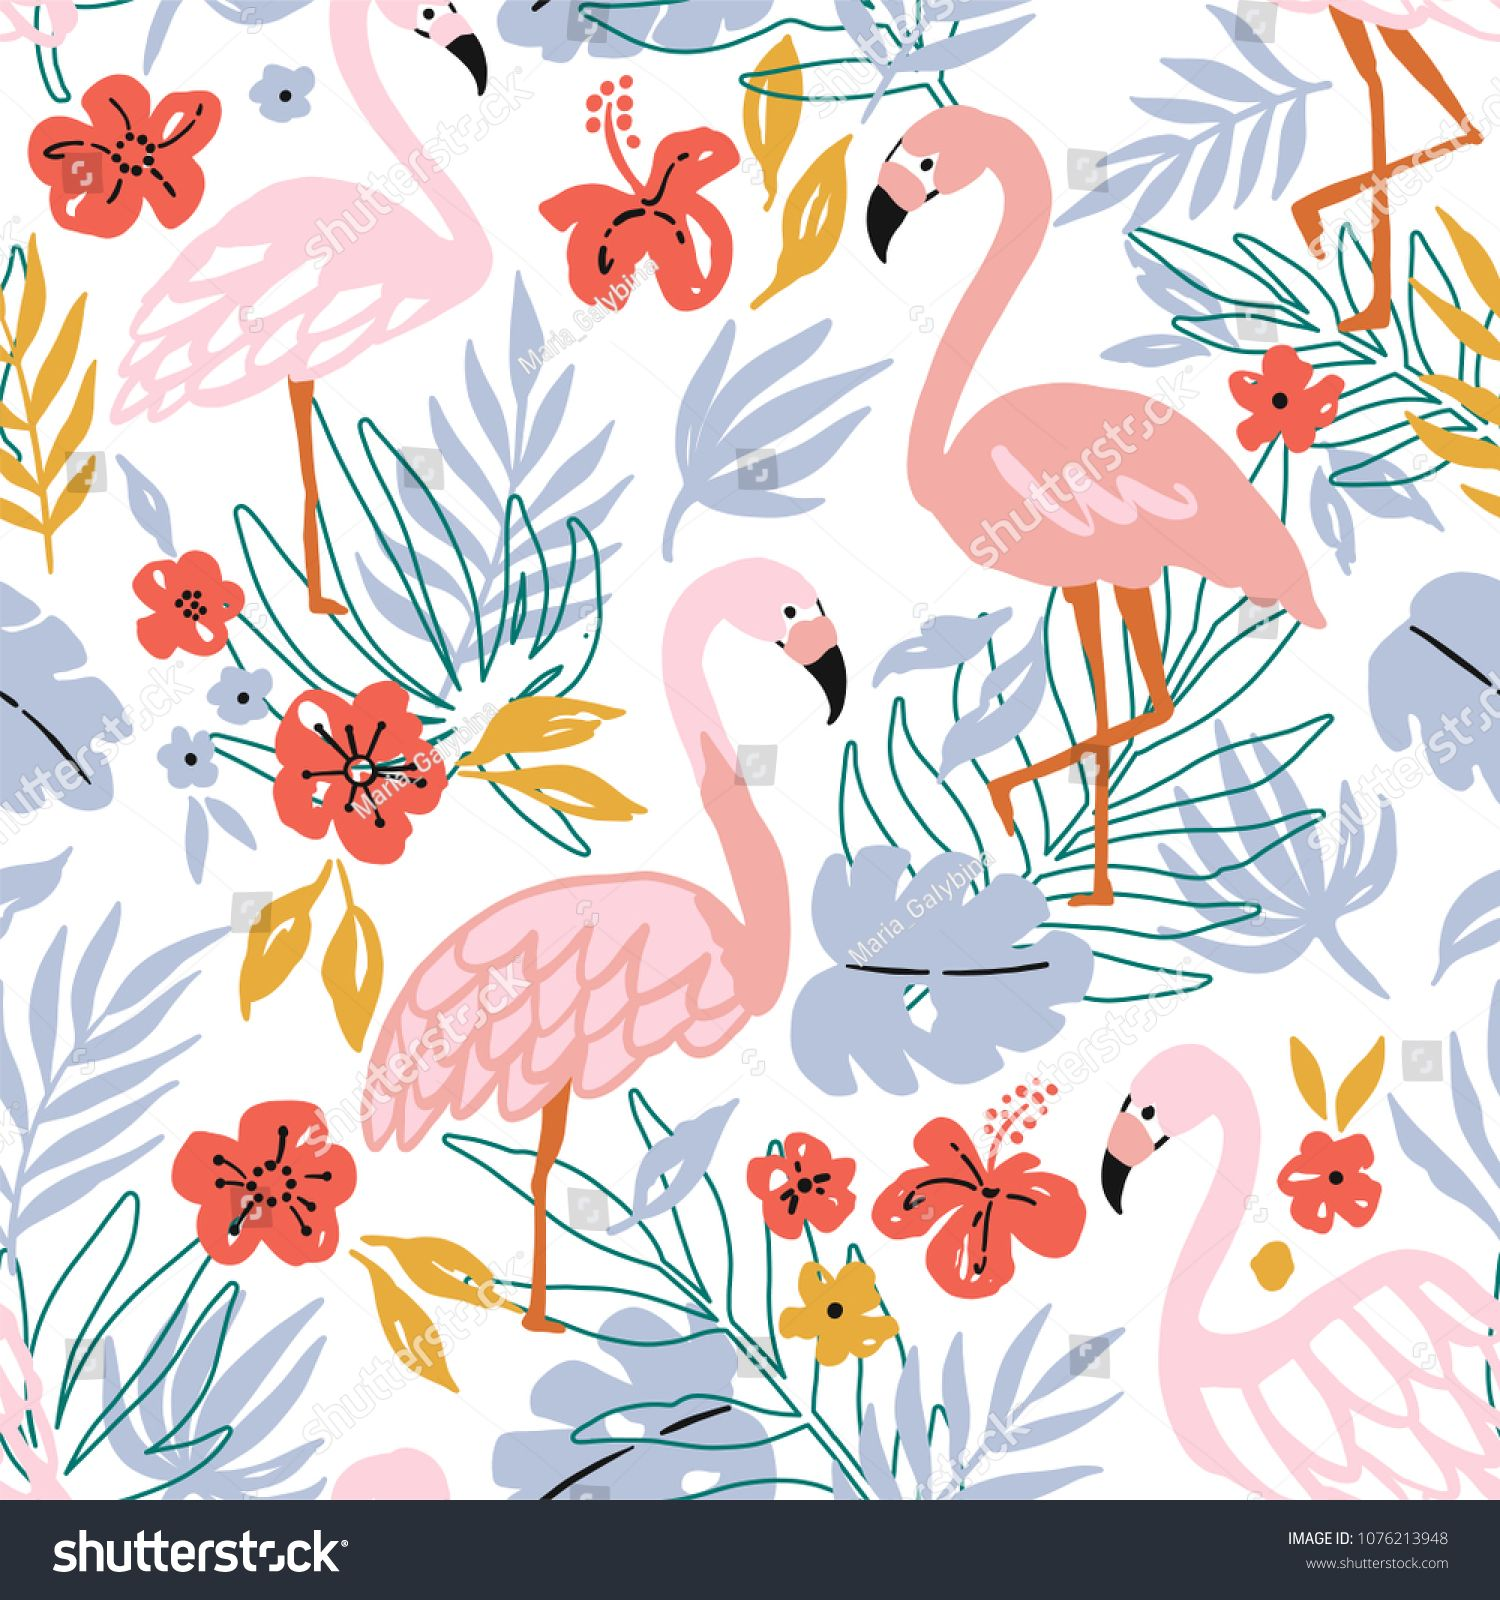 Flamingo Bird And Tropical Flowers Background Seamless Pattern Vector Sponsore Flower Backgrounds Seamless Pattern Vector Photographer Business Card Template